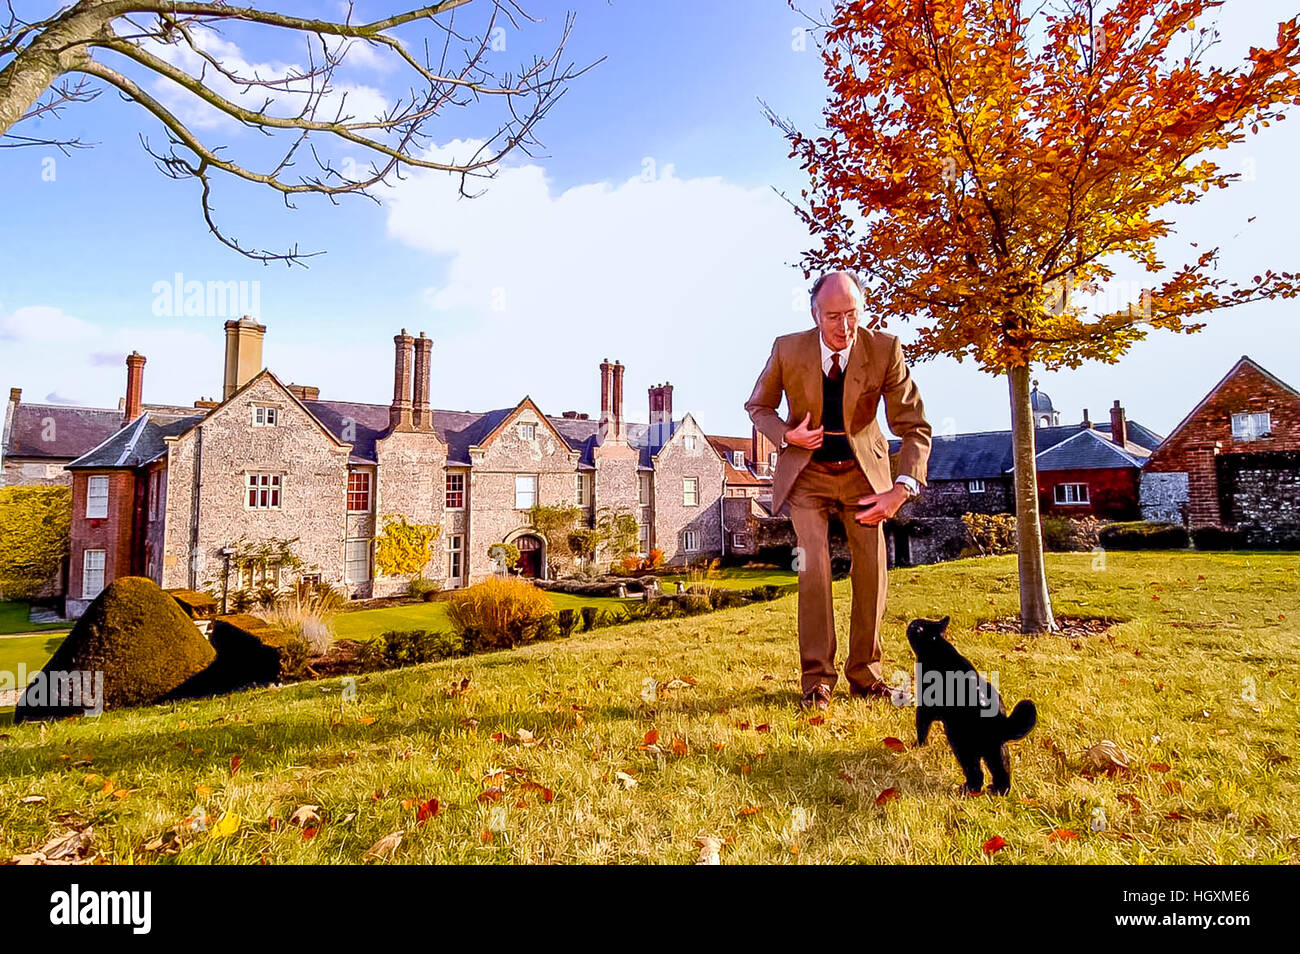 Lord Hampden, on his estate at Glynde Place, near Lewes, East Sussex. Stock Photo